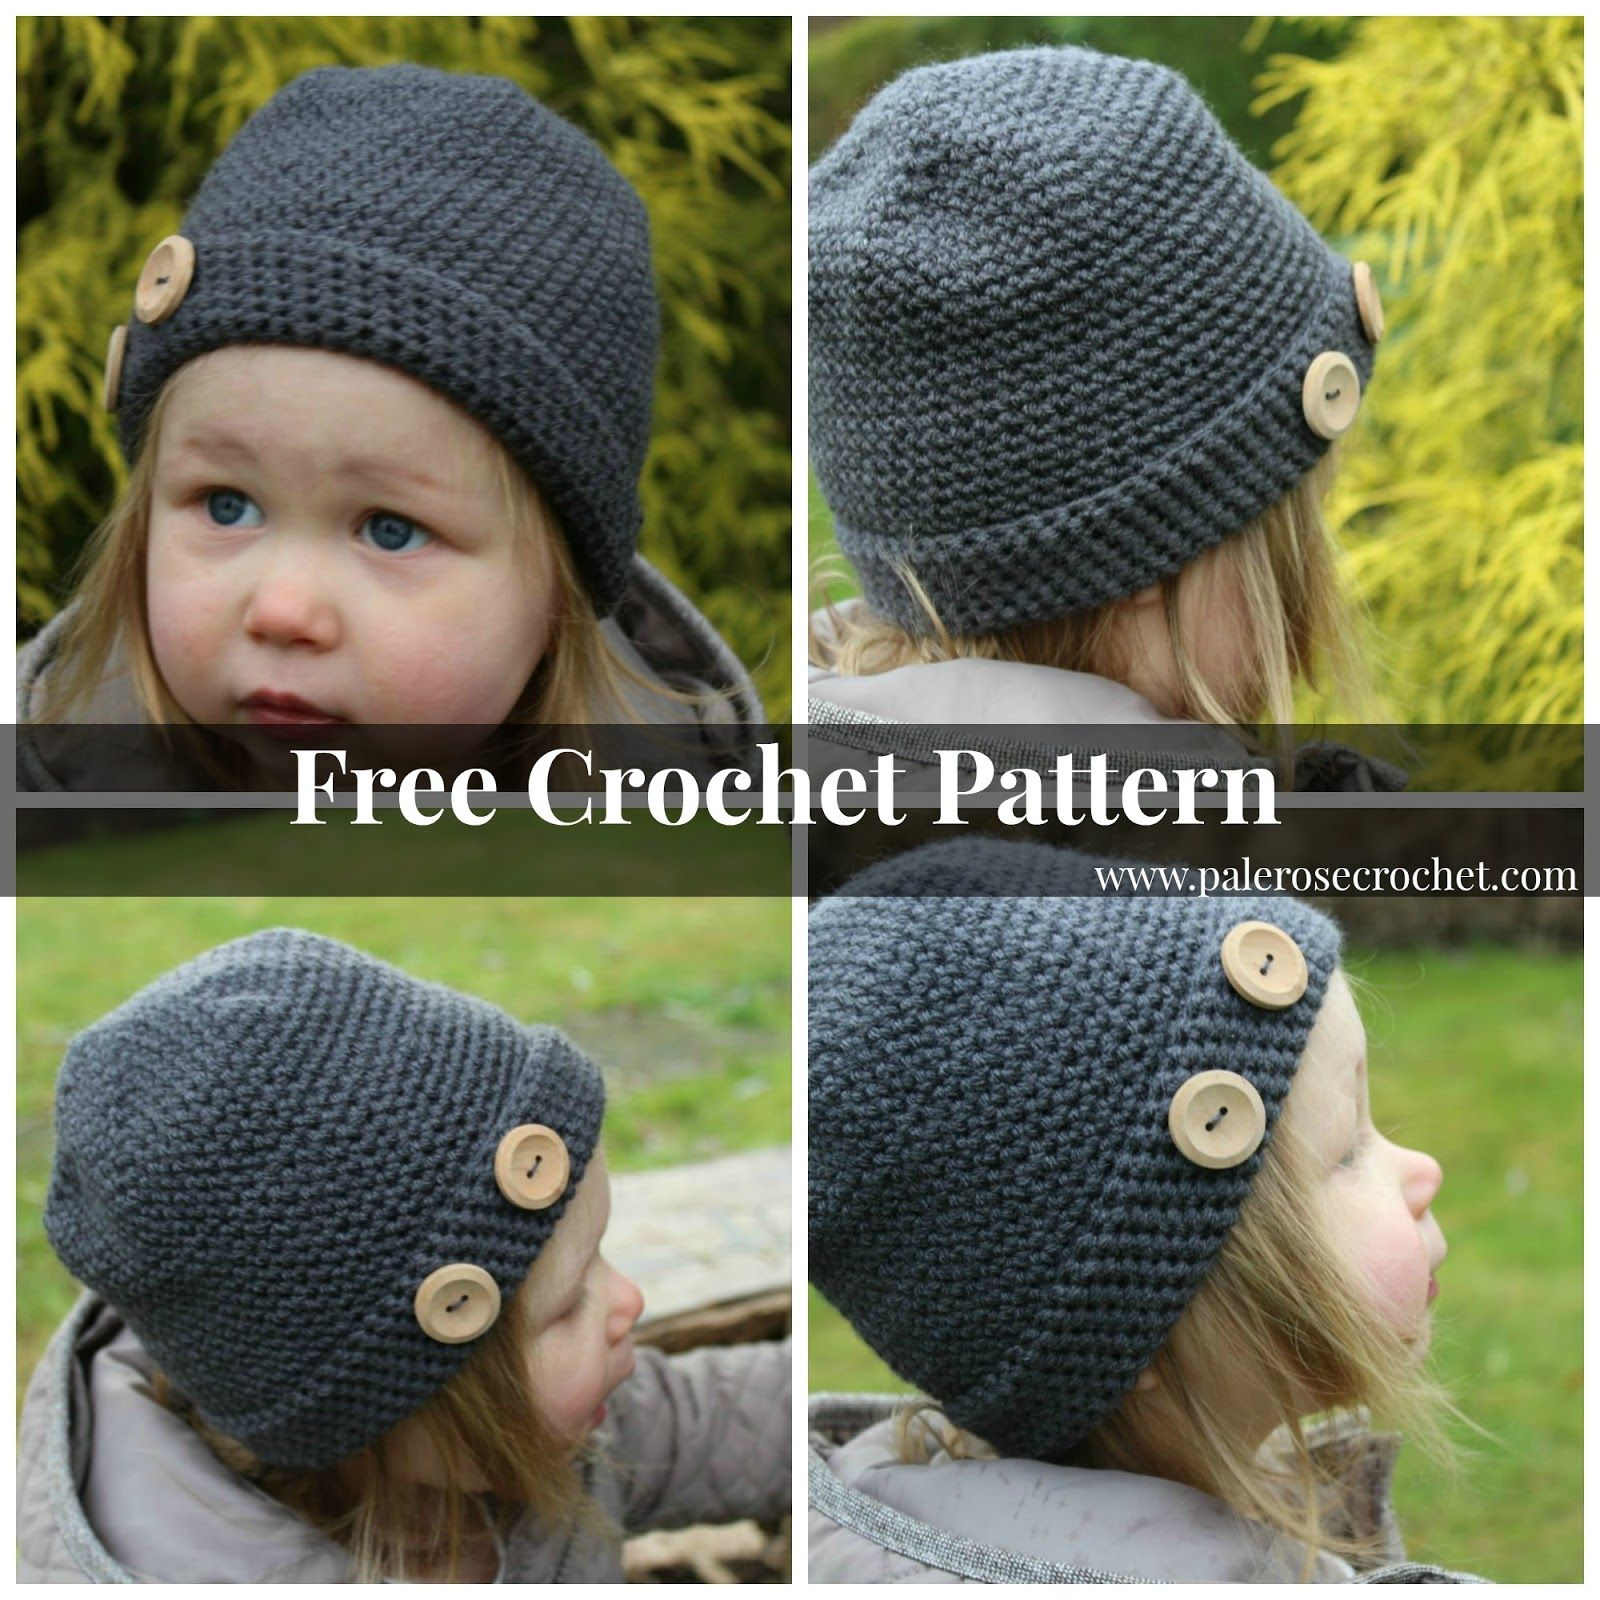 Pale Rose Crochet: Free Crochet Pattern - Toddler Cloche Hat For ...